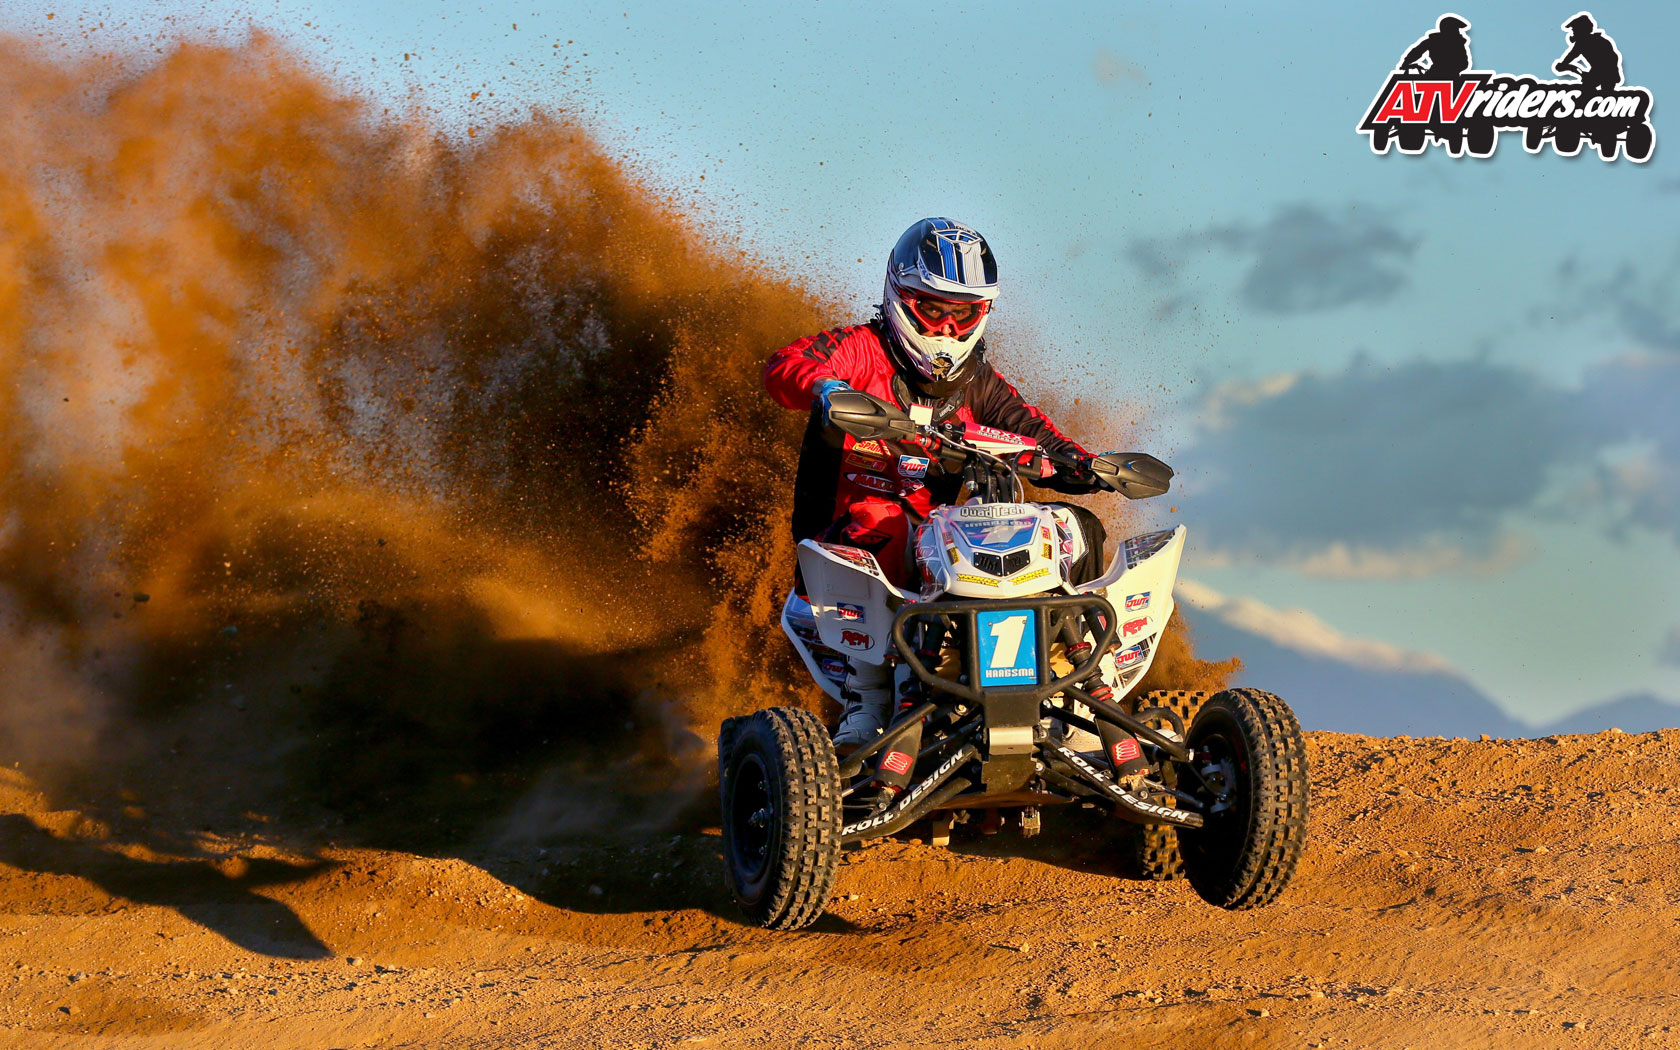 dwts david haagsma 2012 yamaha quadx pro atv champion